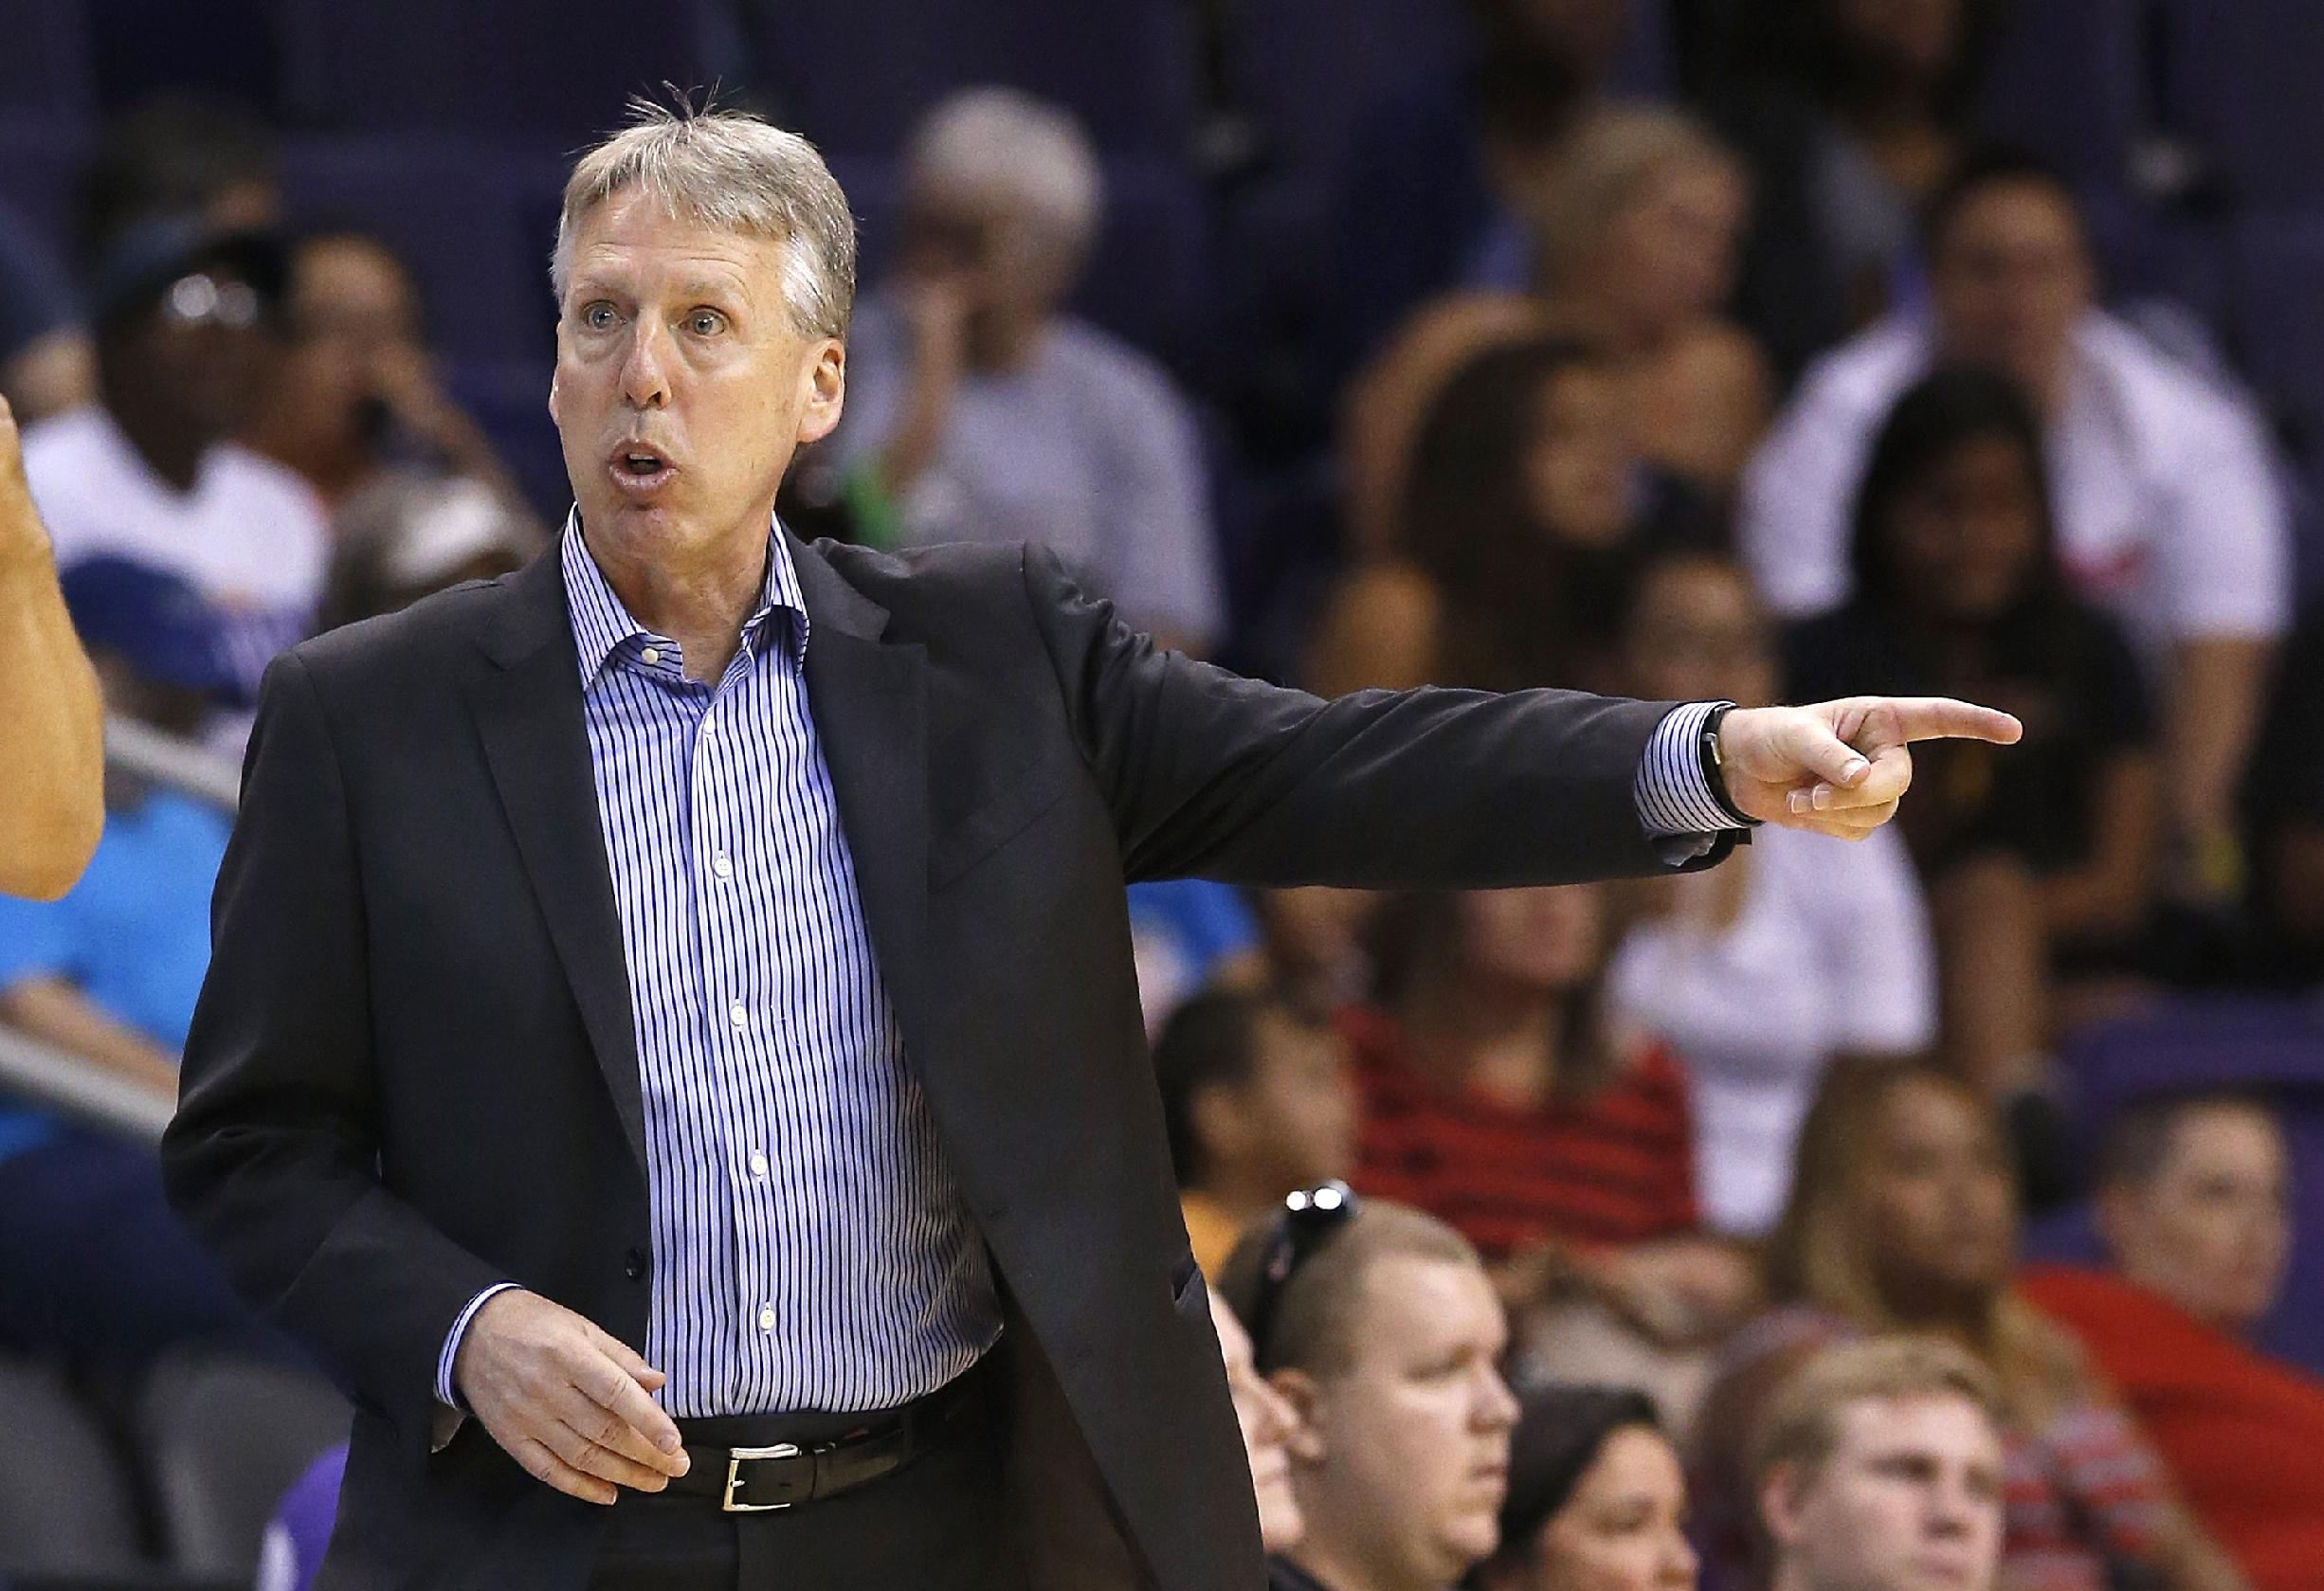 Seattle Storm head coach Brian Agler argues with officials during the second half of a WNBA basketball game against the Phoenix Mercury on Tuesday, June 3, 2014, in Phoenix. The Mercury defeated the Storm 87-72